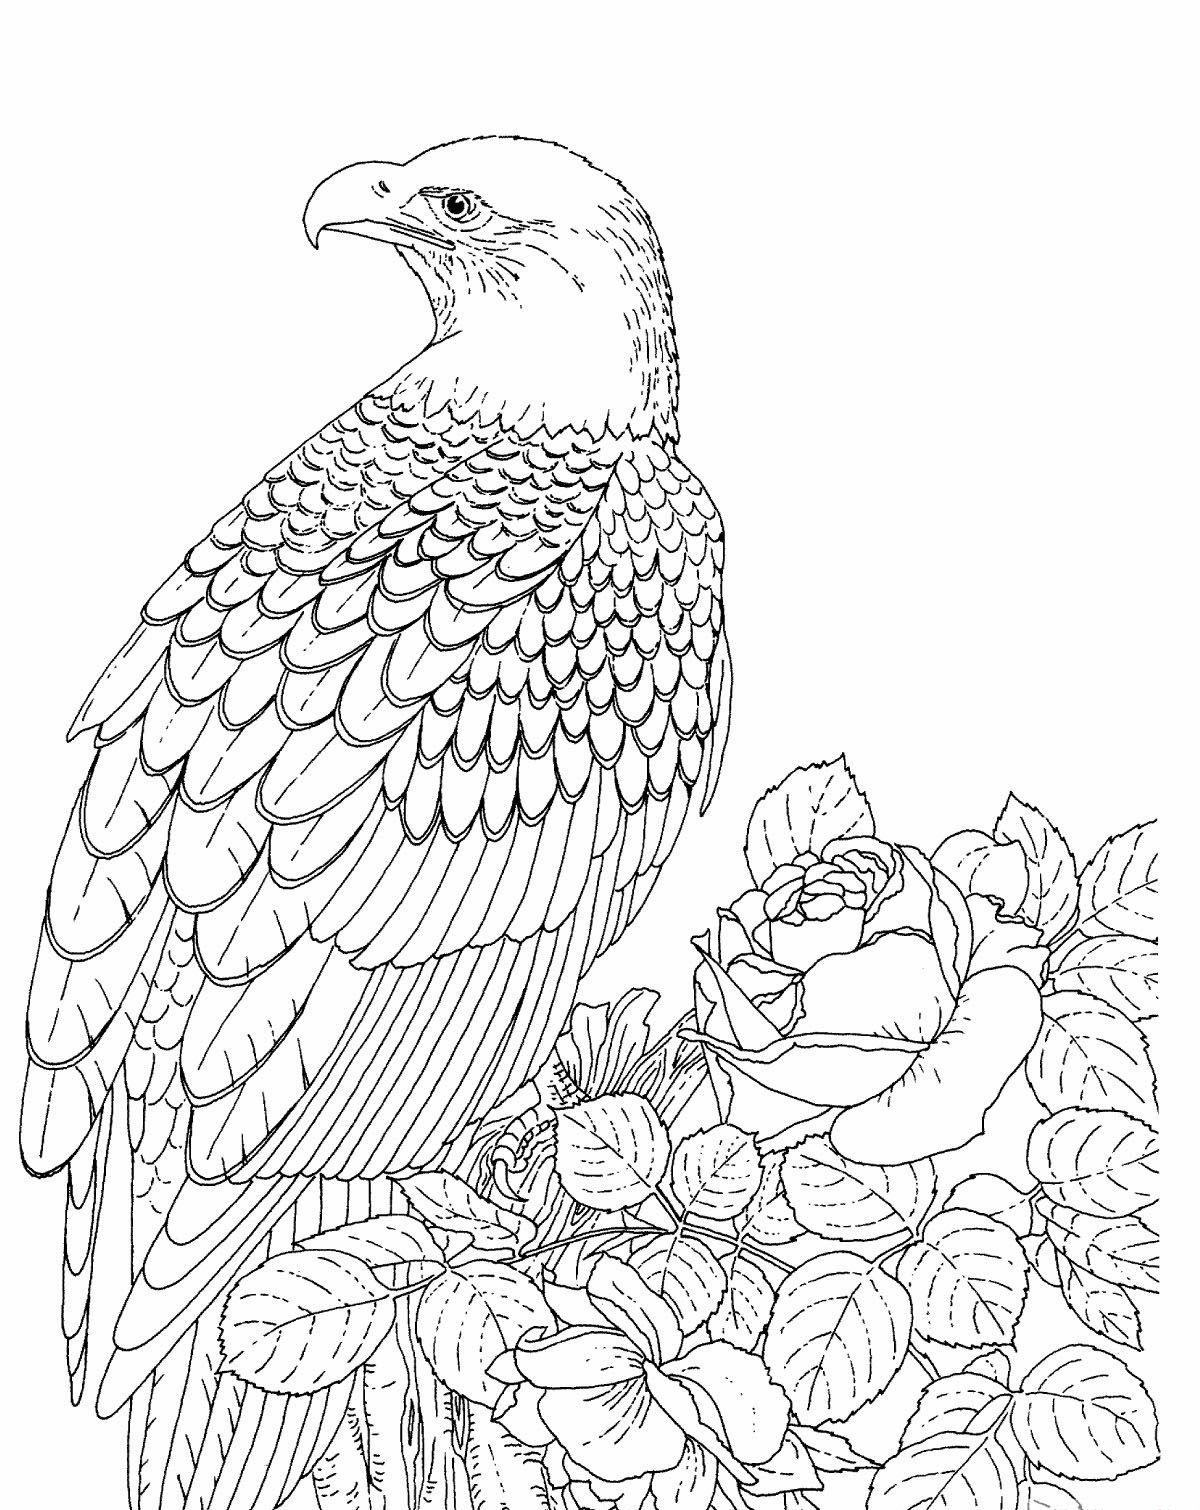 Coloring:Bald Eagle Coloring Pages For Kids Printable Bald Eagle ...